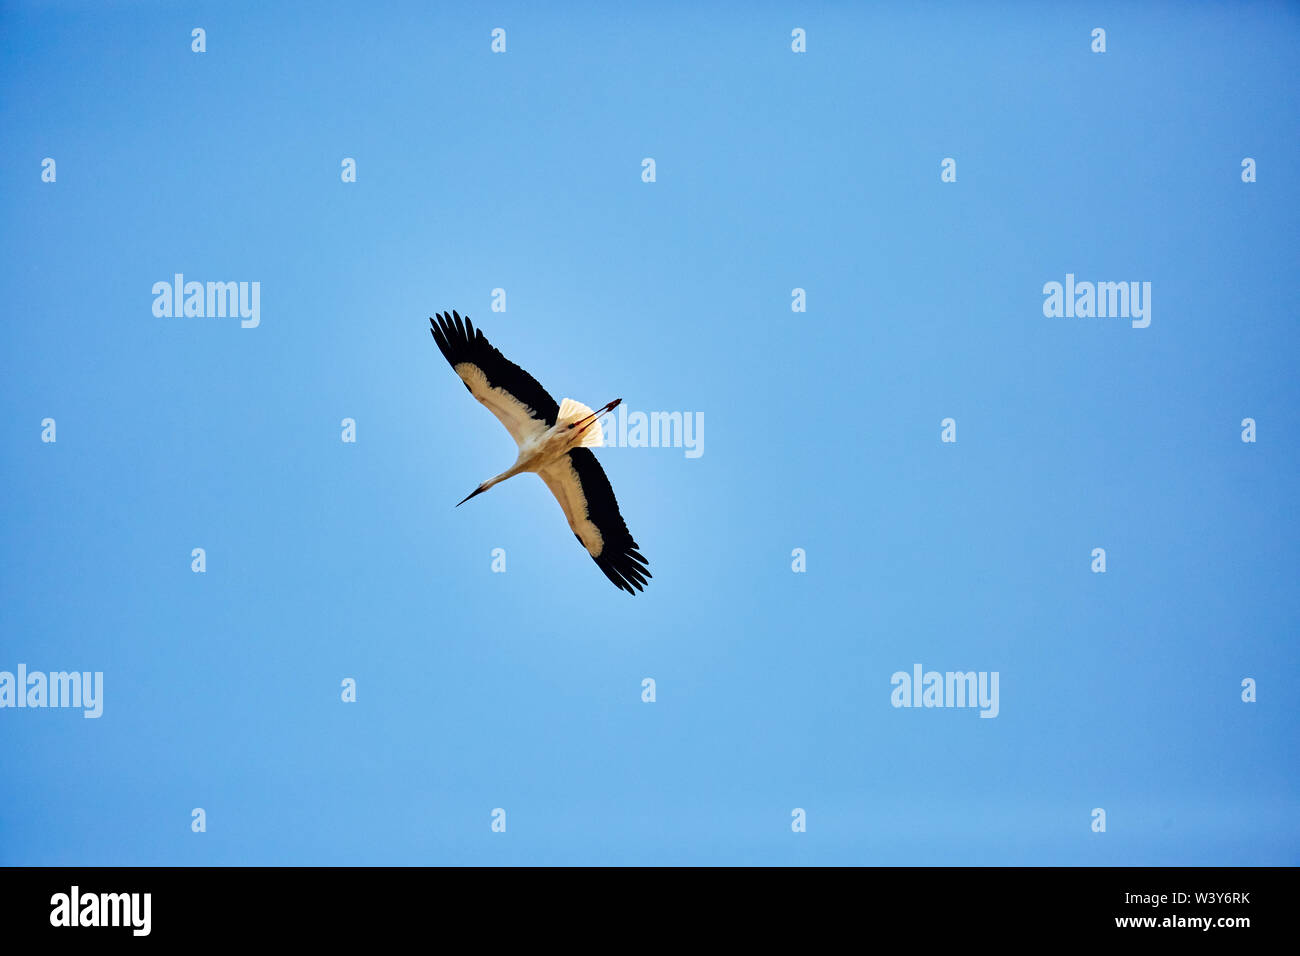 A flying stork in the blue sky - Stock Image